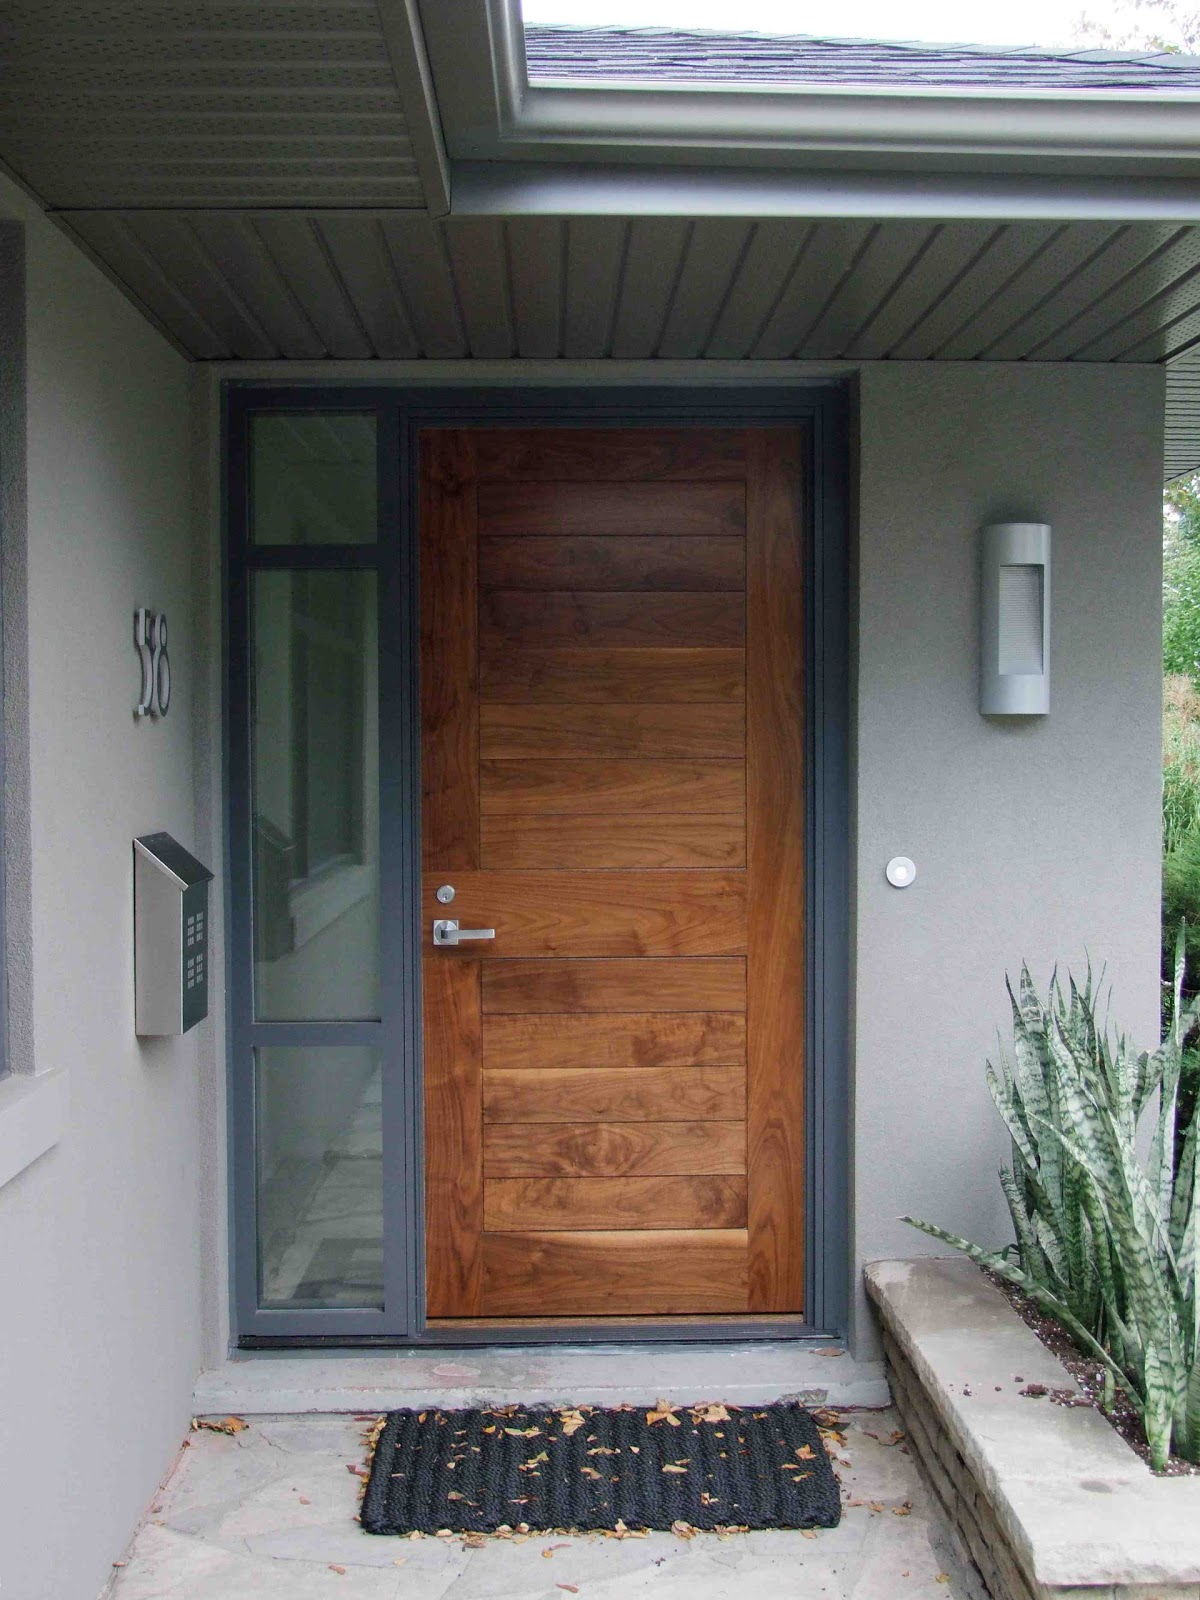 Creed 70 39 s bungalow makes a modern impression for Door design picture